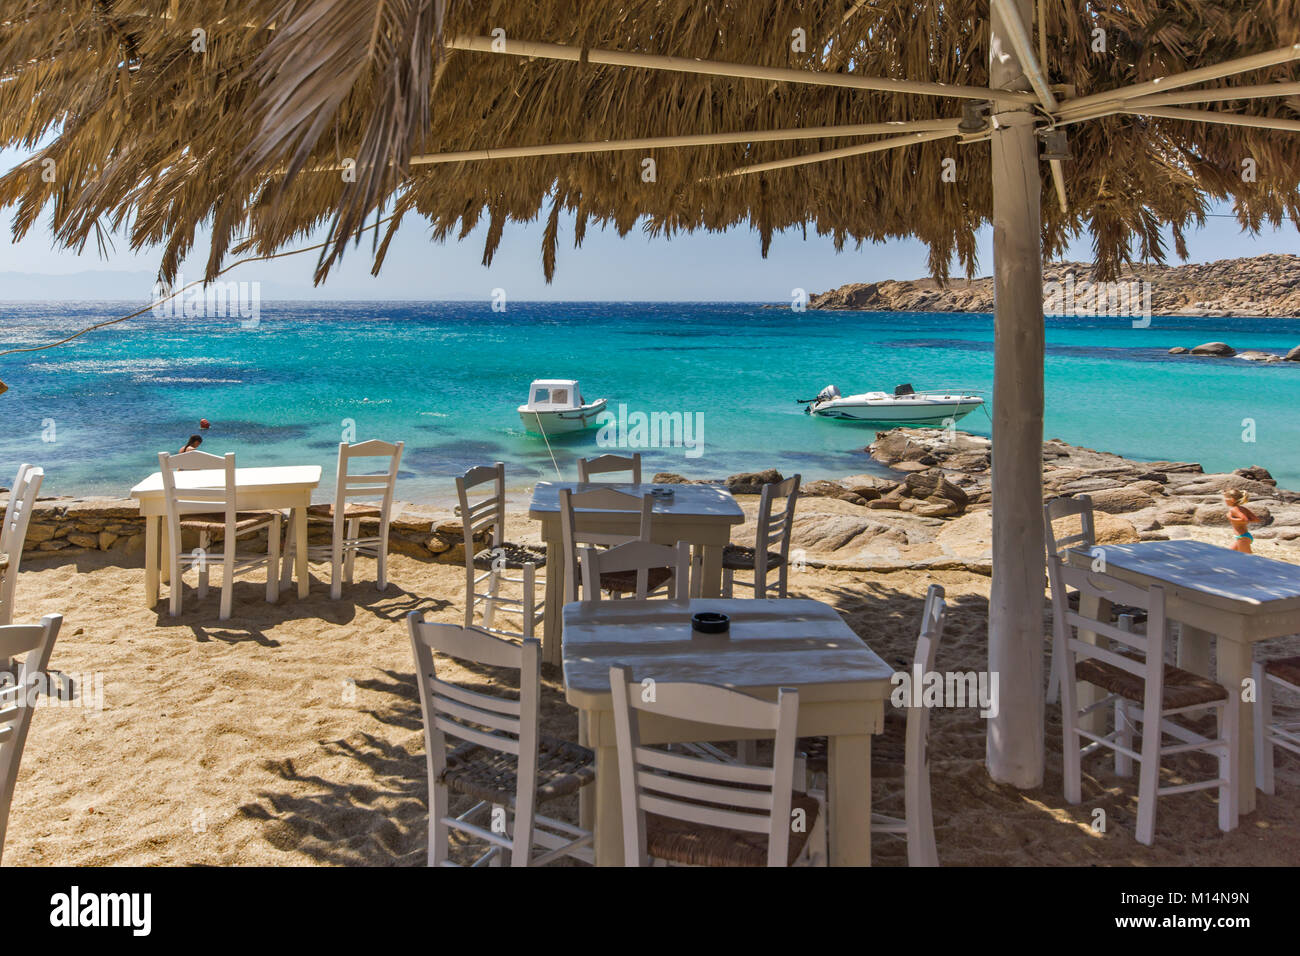 Best Island Beaches For Partying Mykonos St Barts: Paradise Beach, Mykonos, Greece Stock Photos & Paradise